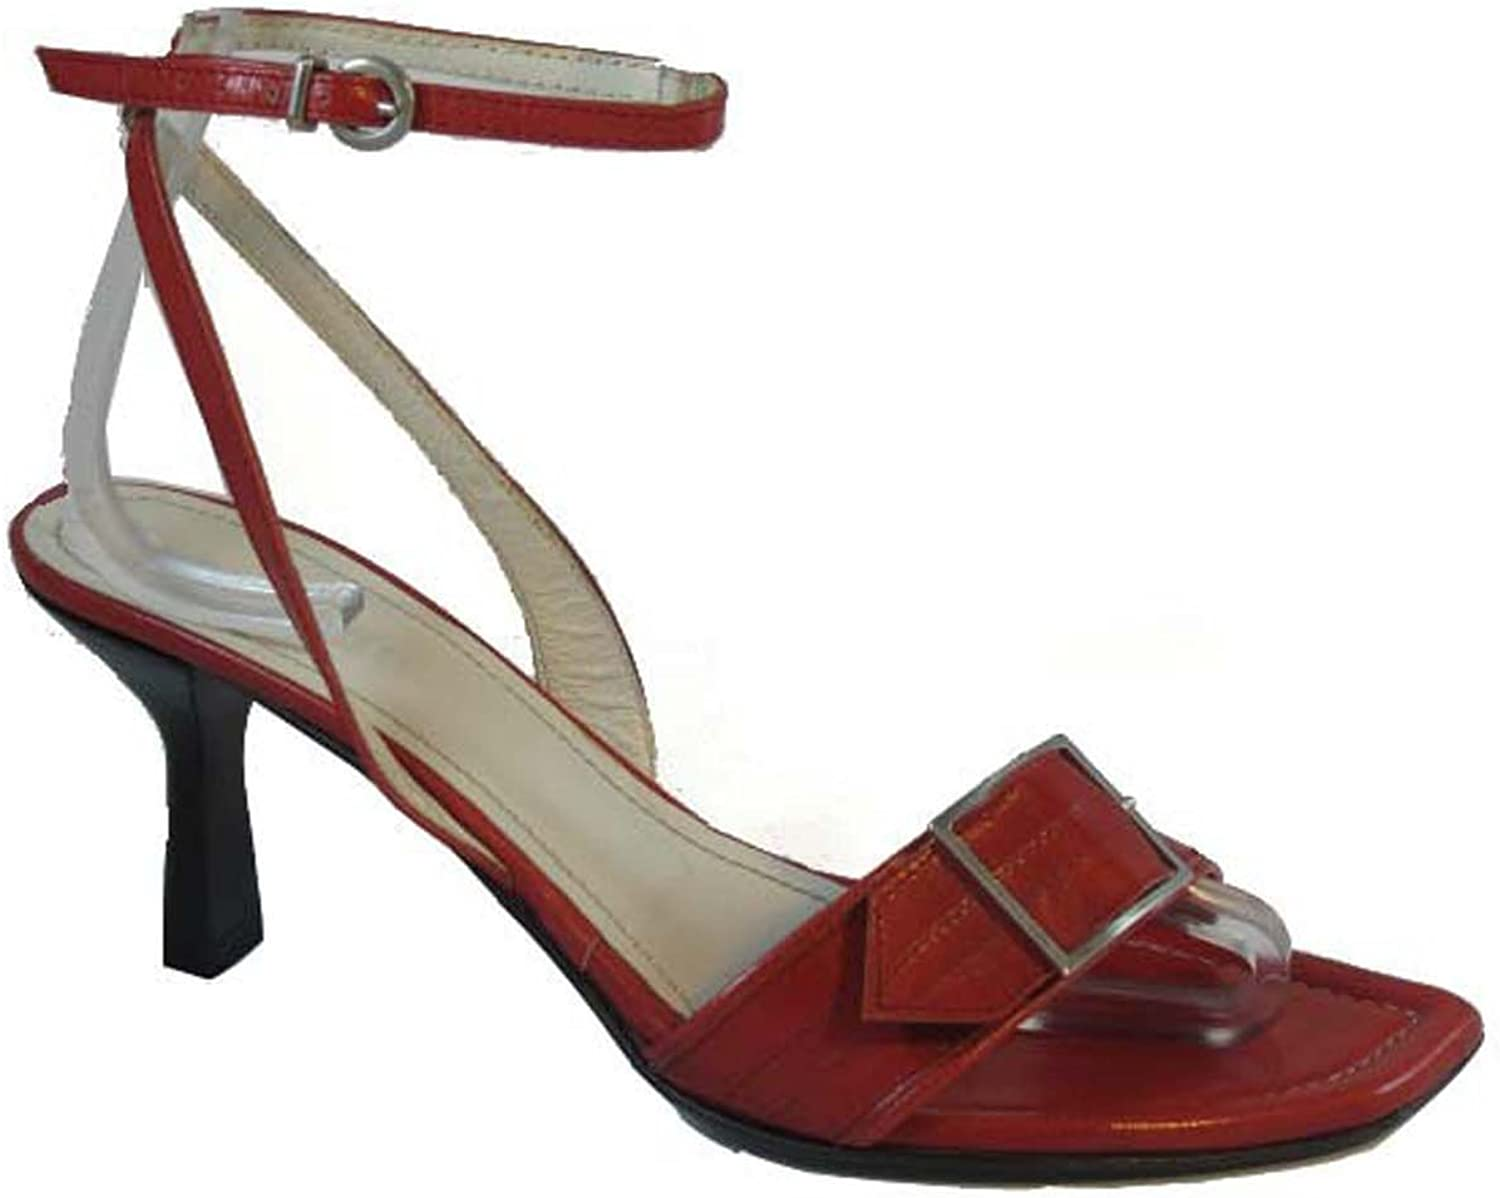 Romanelli Italian Women's Mid Heel Sandals 9402, Available in Red and Black